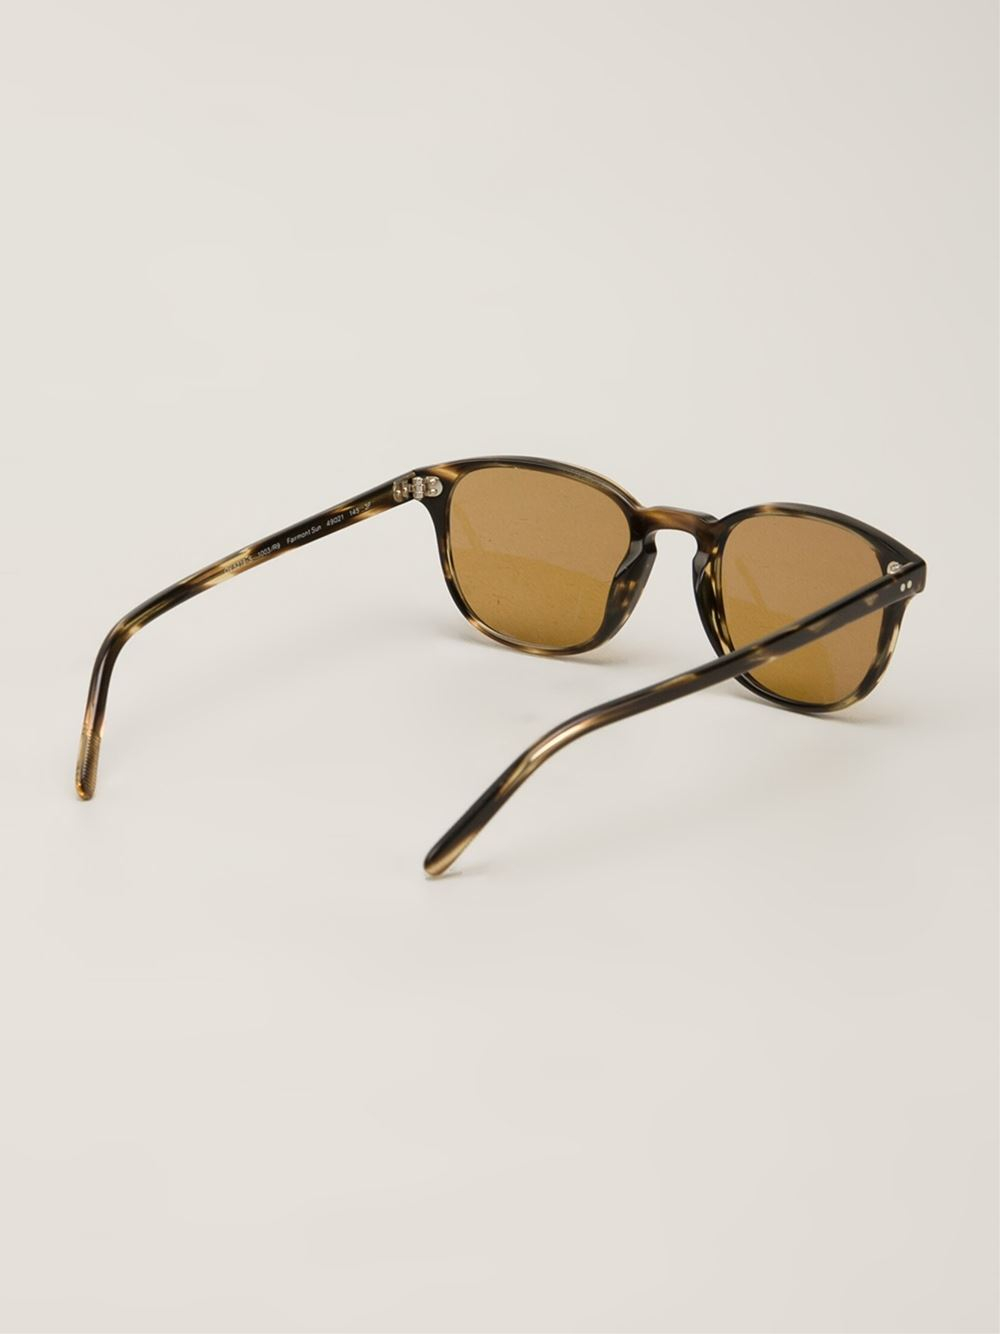 2389e92dac57 Lyst - Oliver Peoples Fairmont Sun Sunglasses in Brown